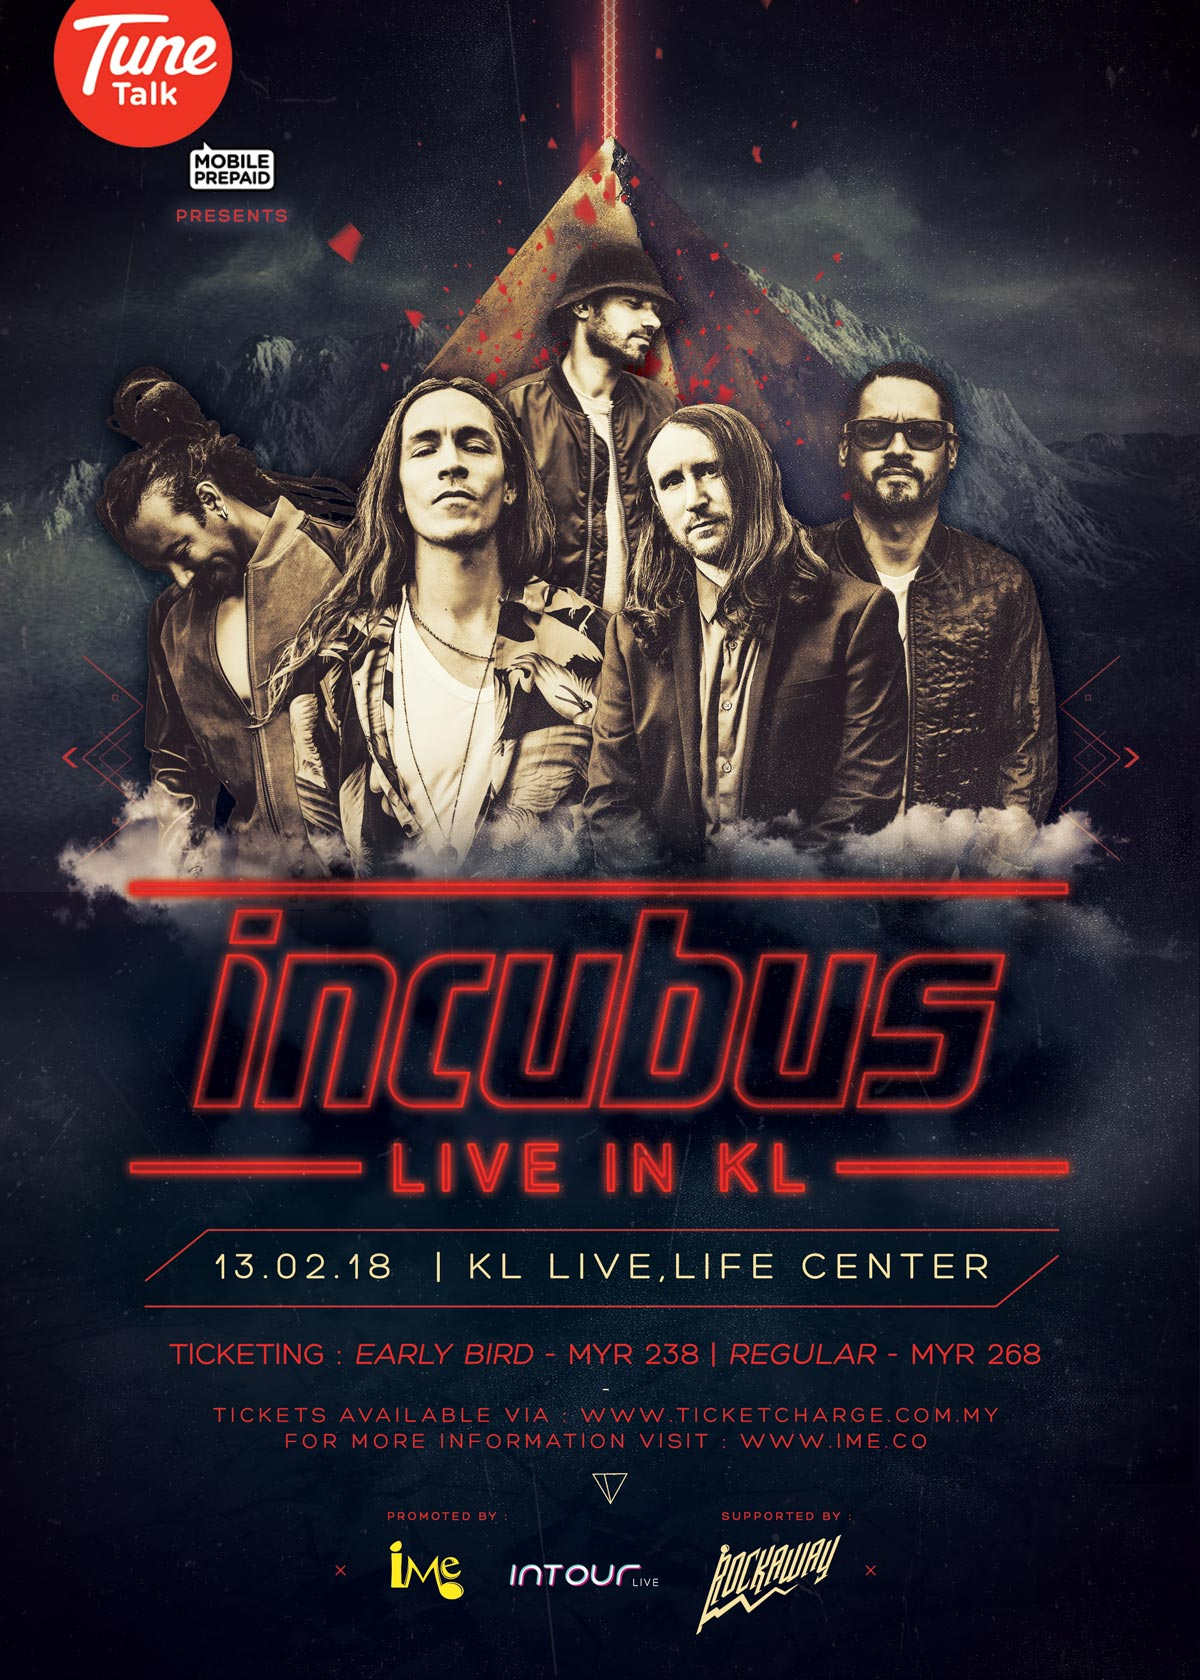 Incubus Songs List Simple incubus is heading down to kl in feb '18